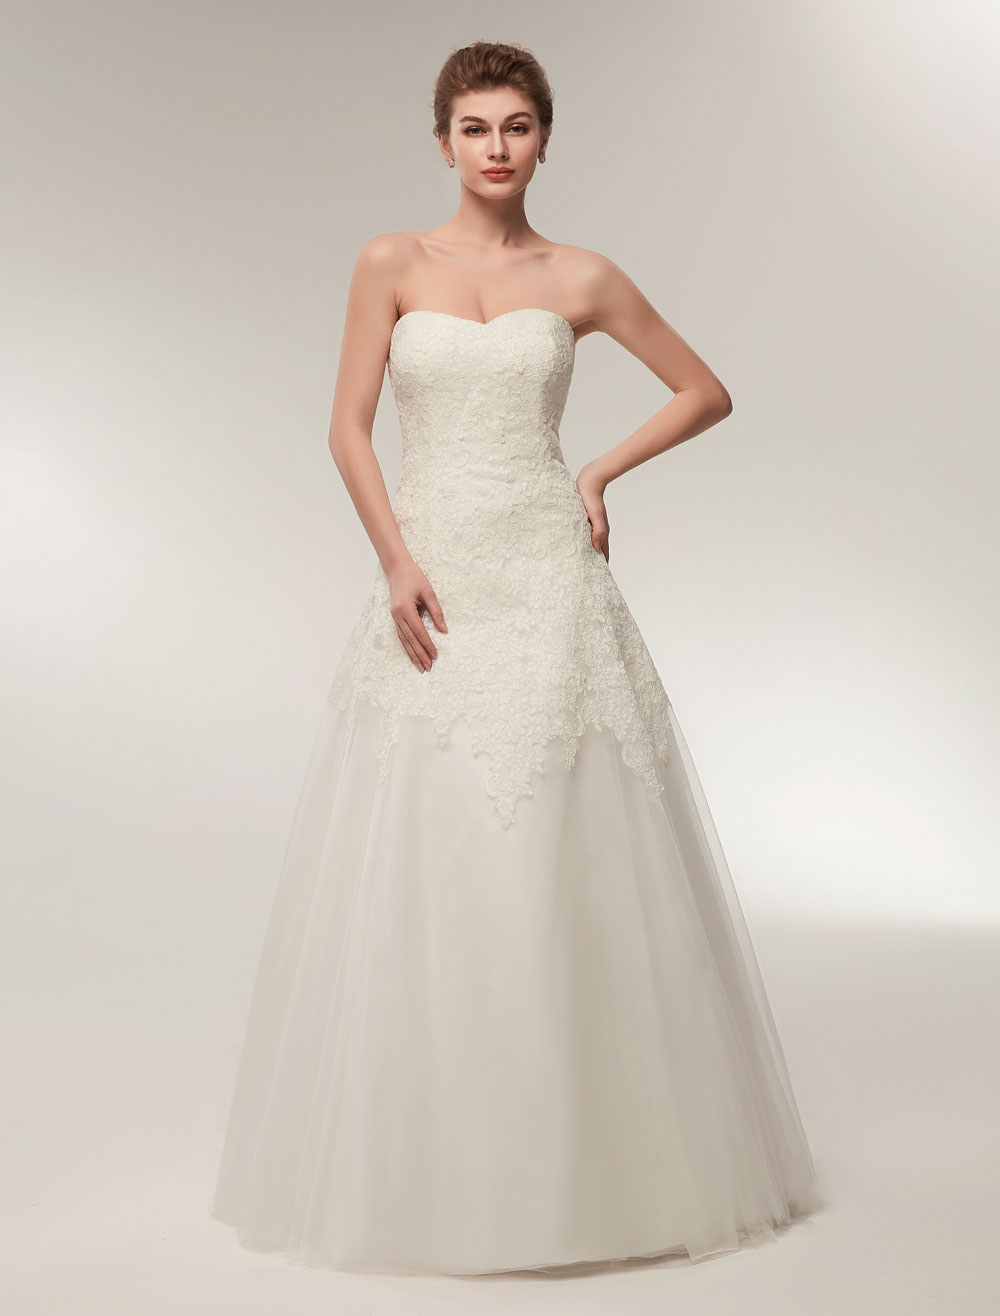 Wedding Dresses Strapless Lace Maxi Bridal Dress Sweetheart Neckline Floor Length Ivory Wedding Gowns